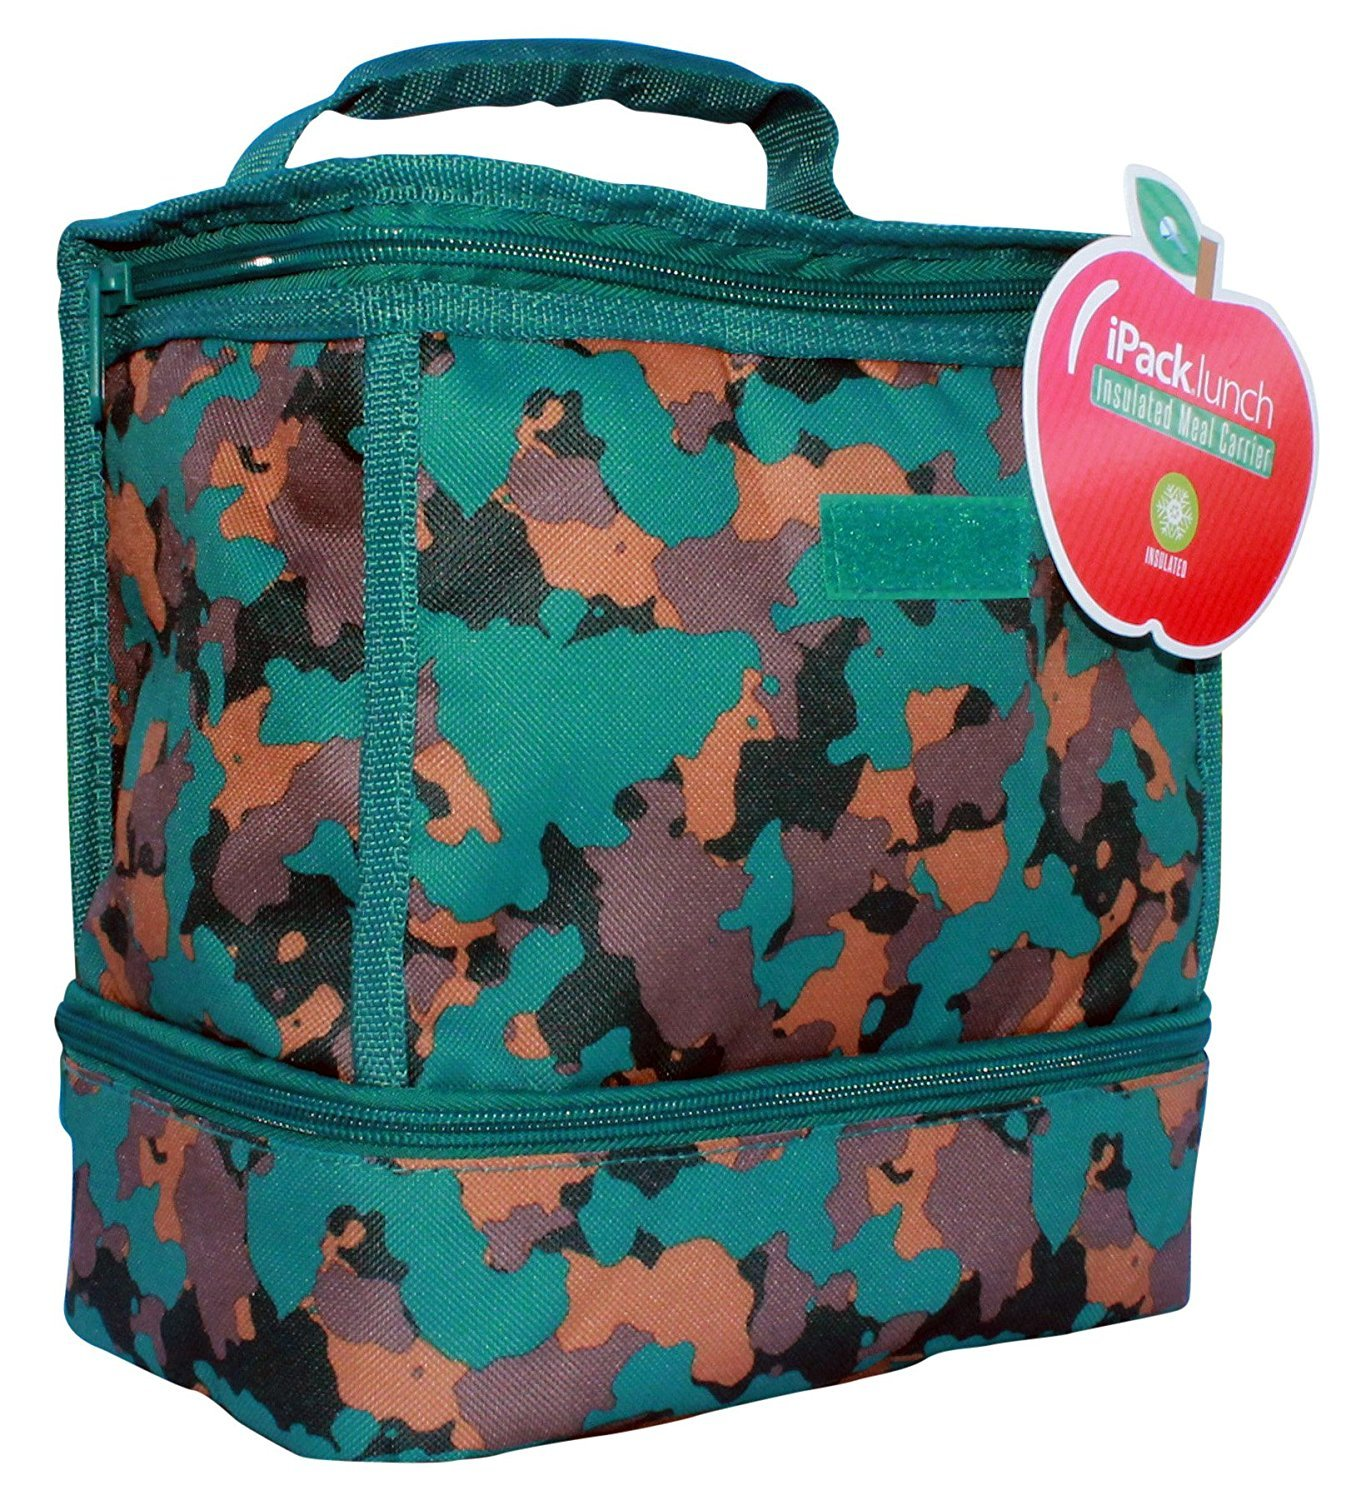 iPack lunch Insulated Meal Carrier Blue Camouflage